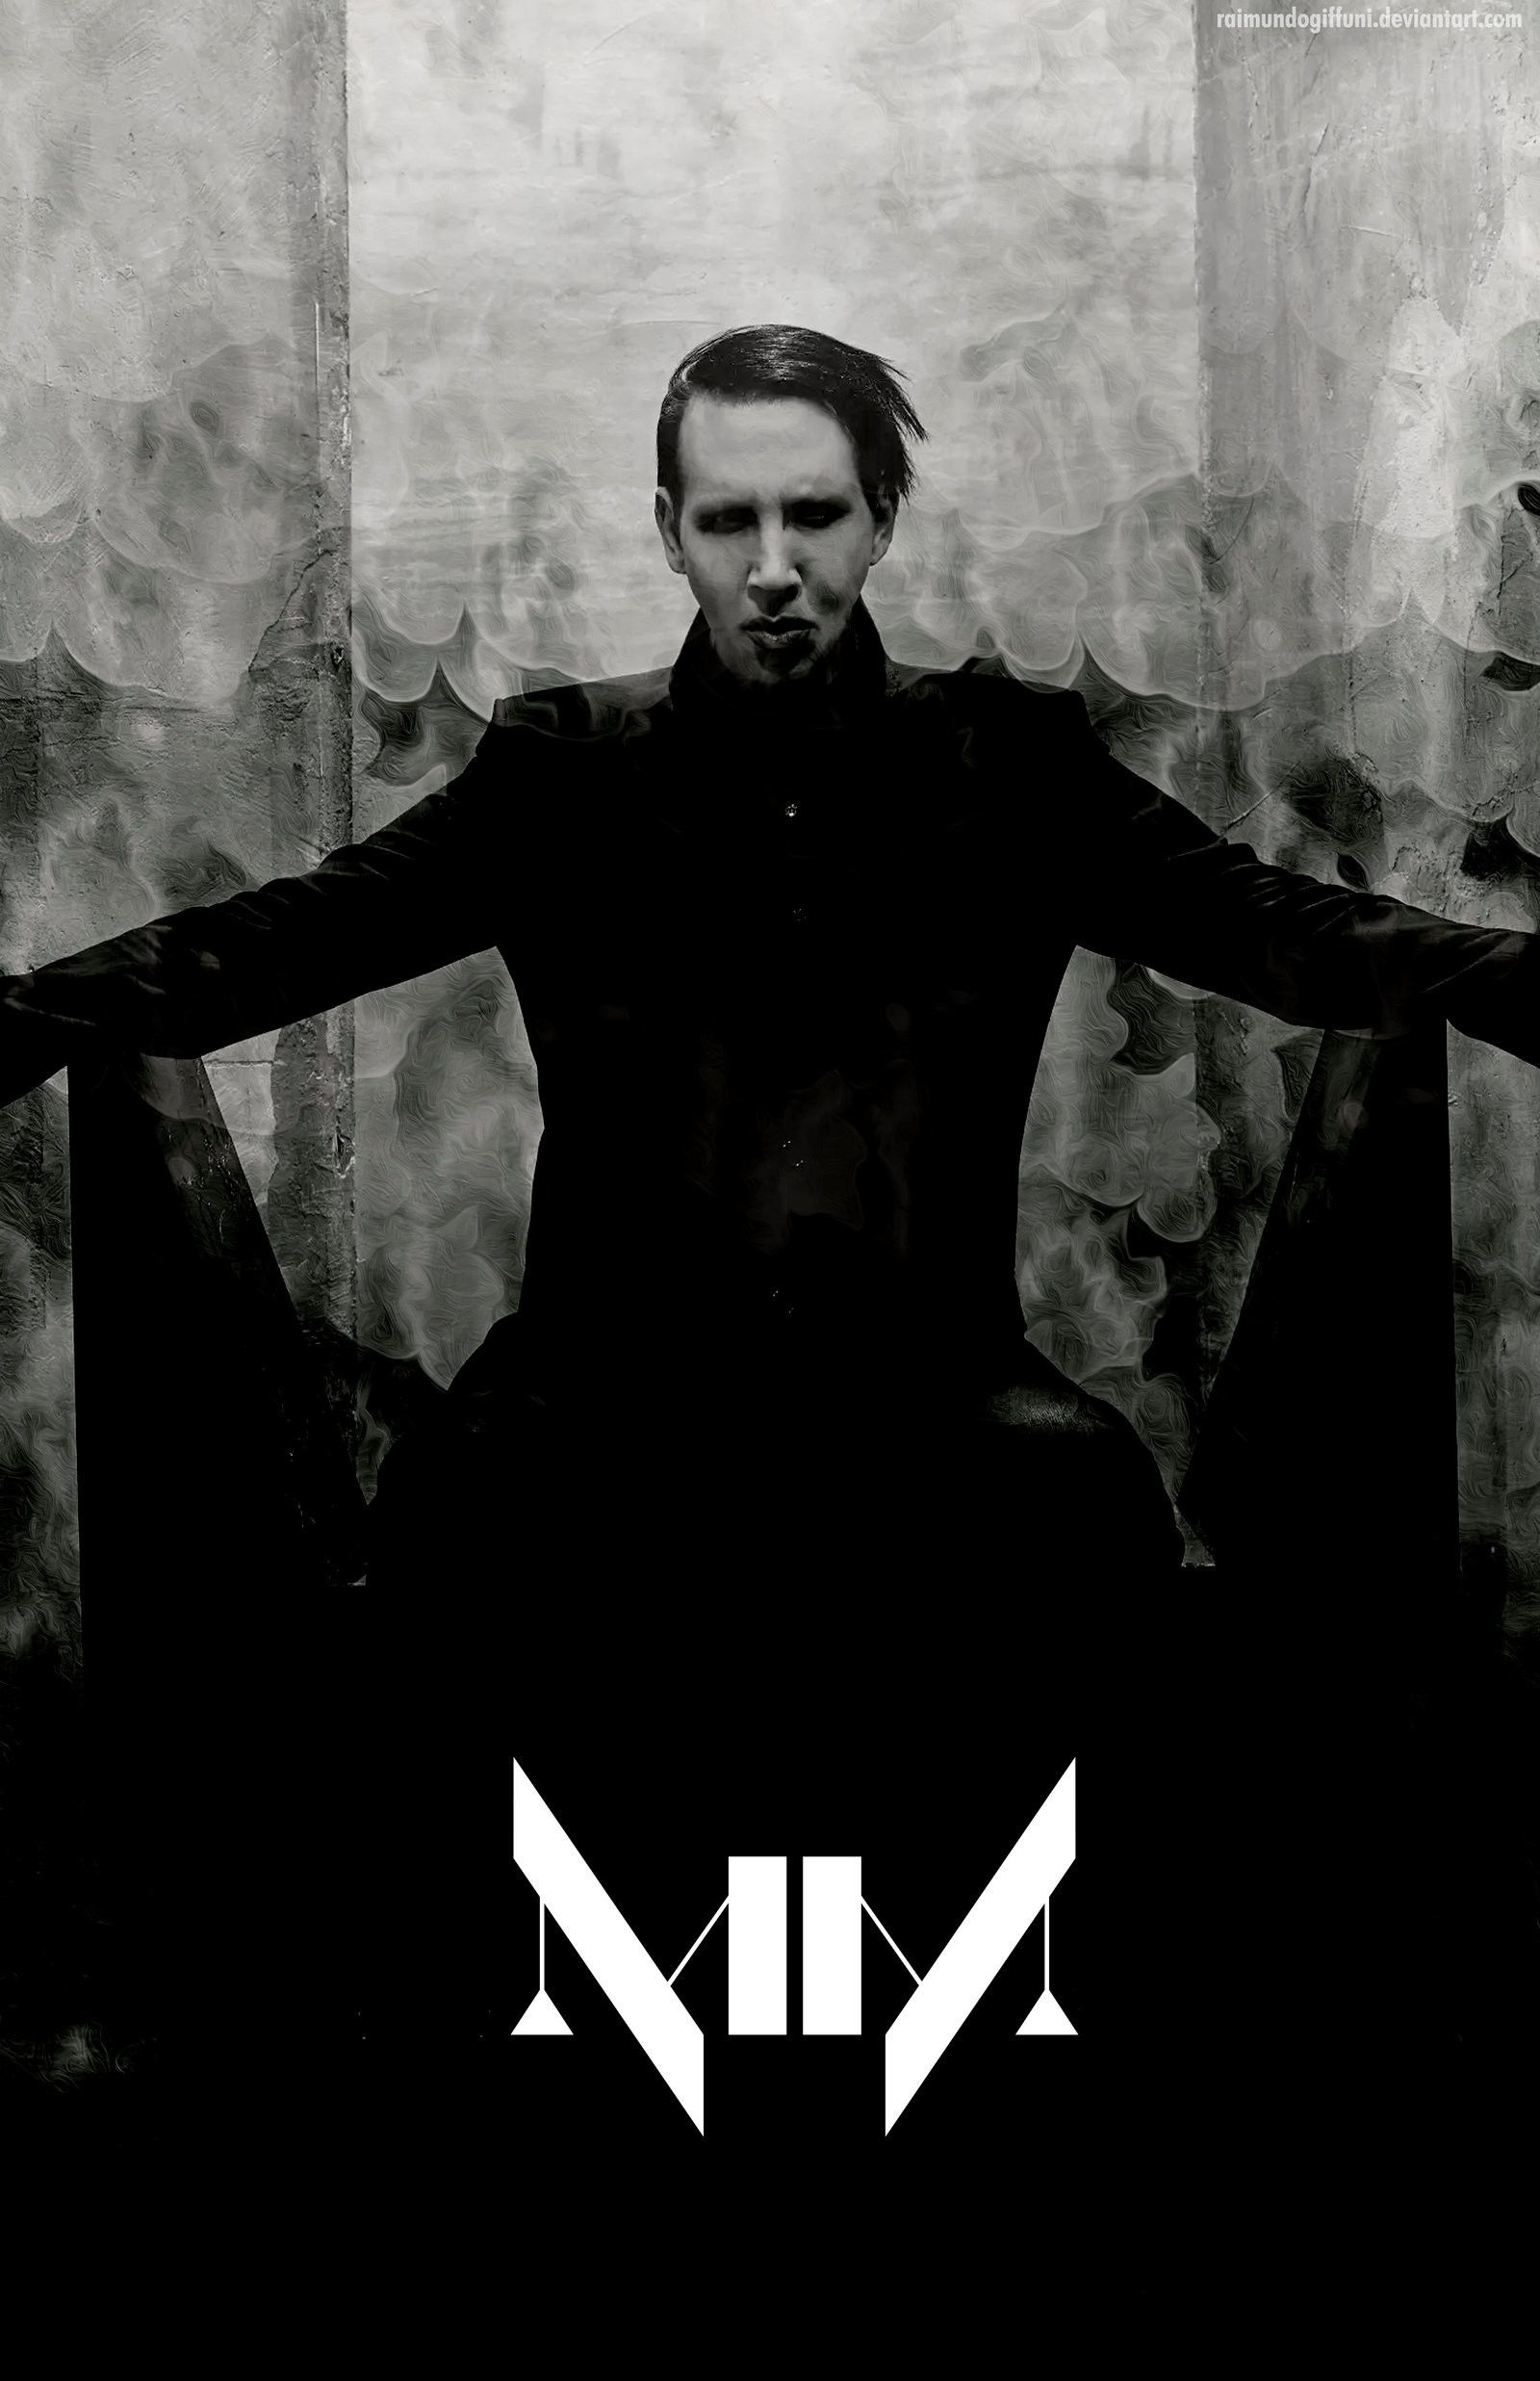 Marilyn Manson Iphone Wallpapers Top Free Marilyn Manson